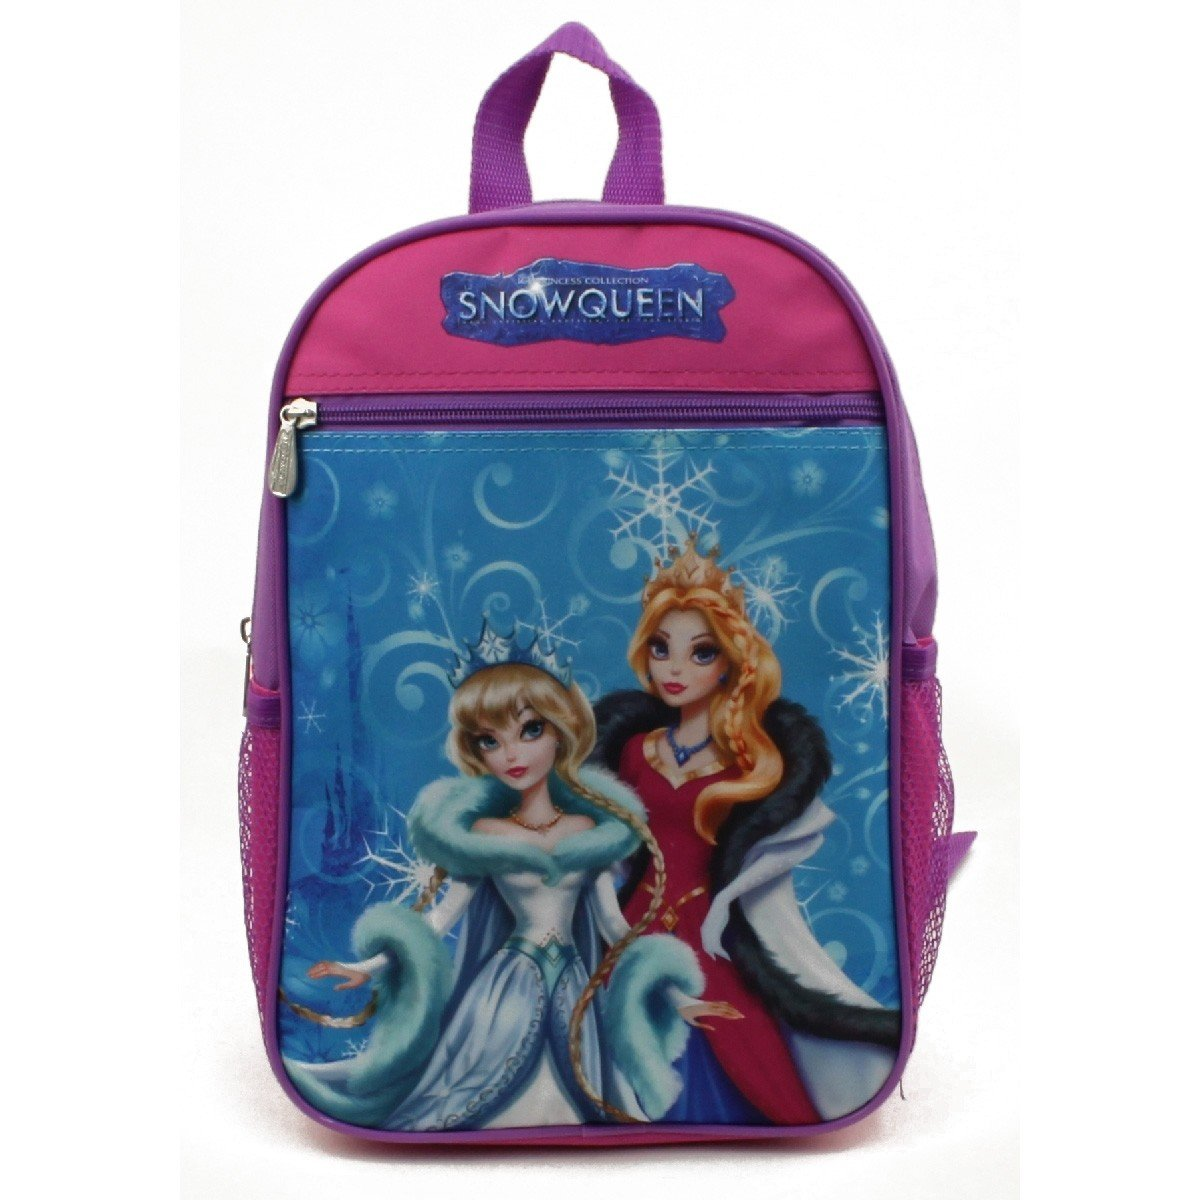 15'' Wholesale Snow Queen Character Print Backpack - Case of 24